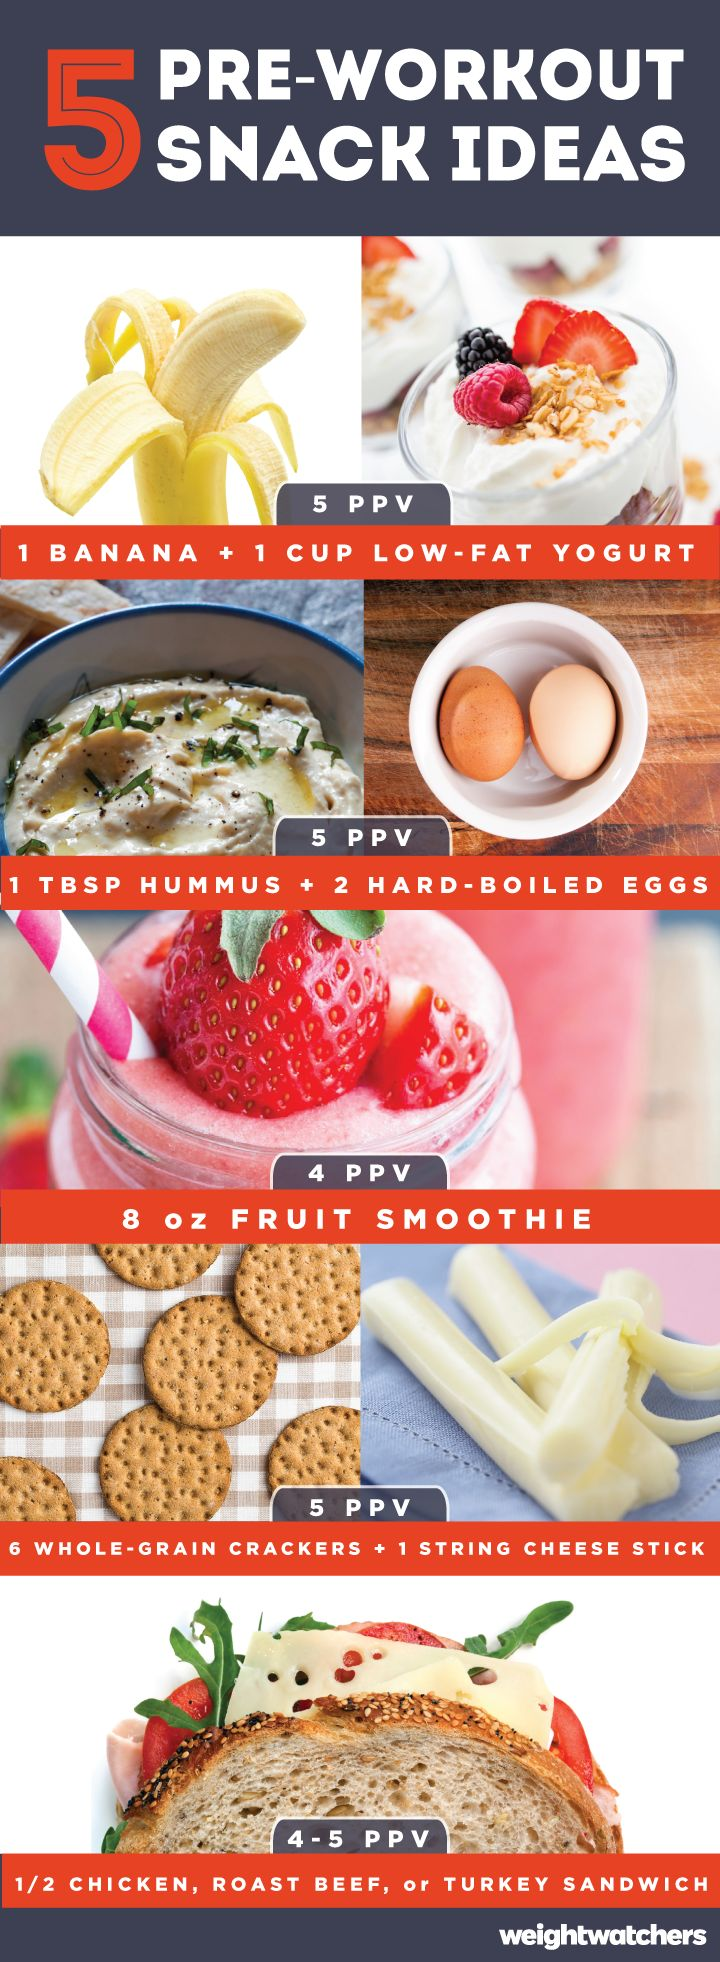 Wondering what to eat before you head to workout? Check out these 5 PointsPlus value snacks that will keep your body fueled up.